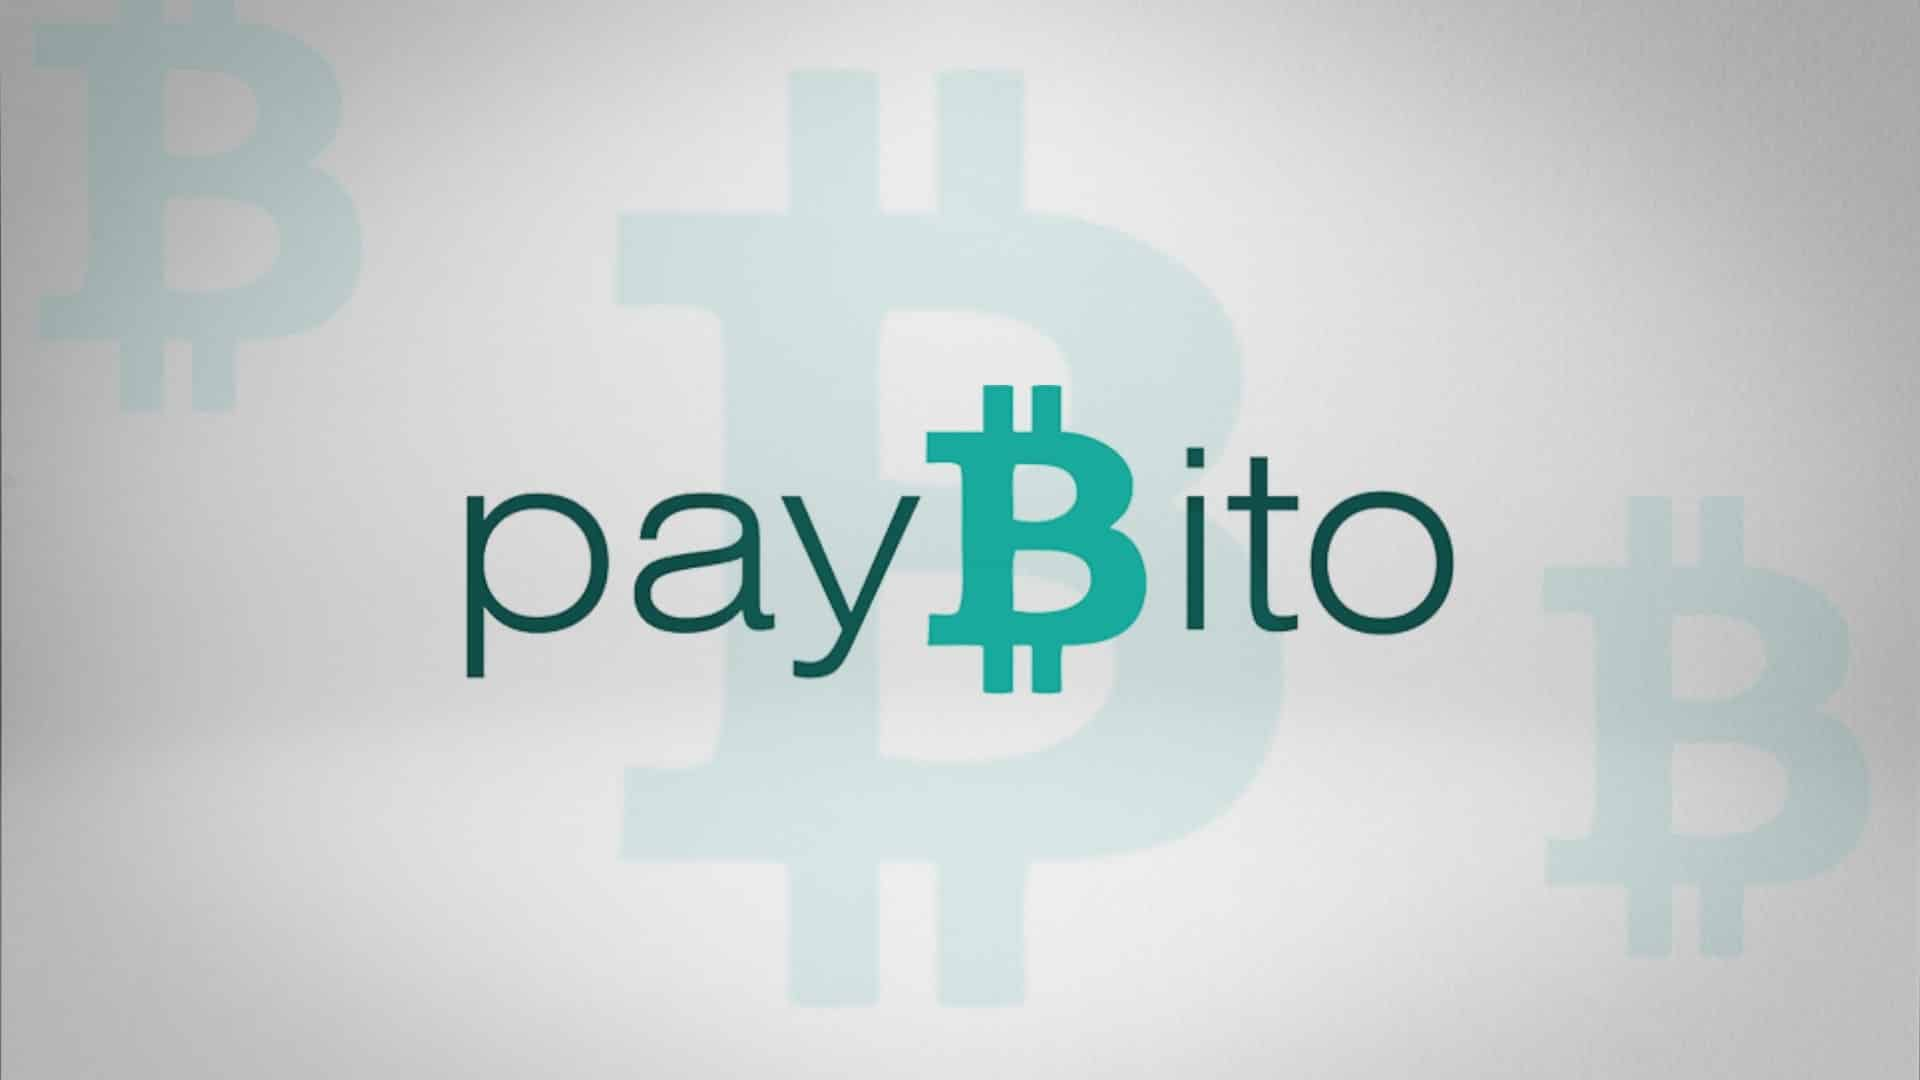 PayBito Helps Enterprises to Build Exchange Platform Through White Label Software